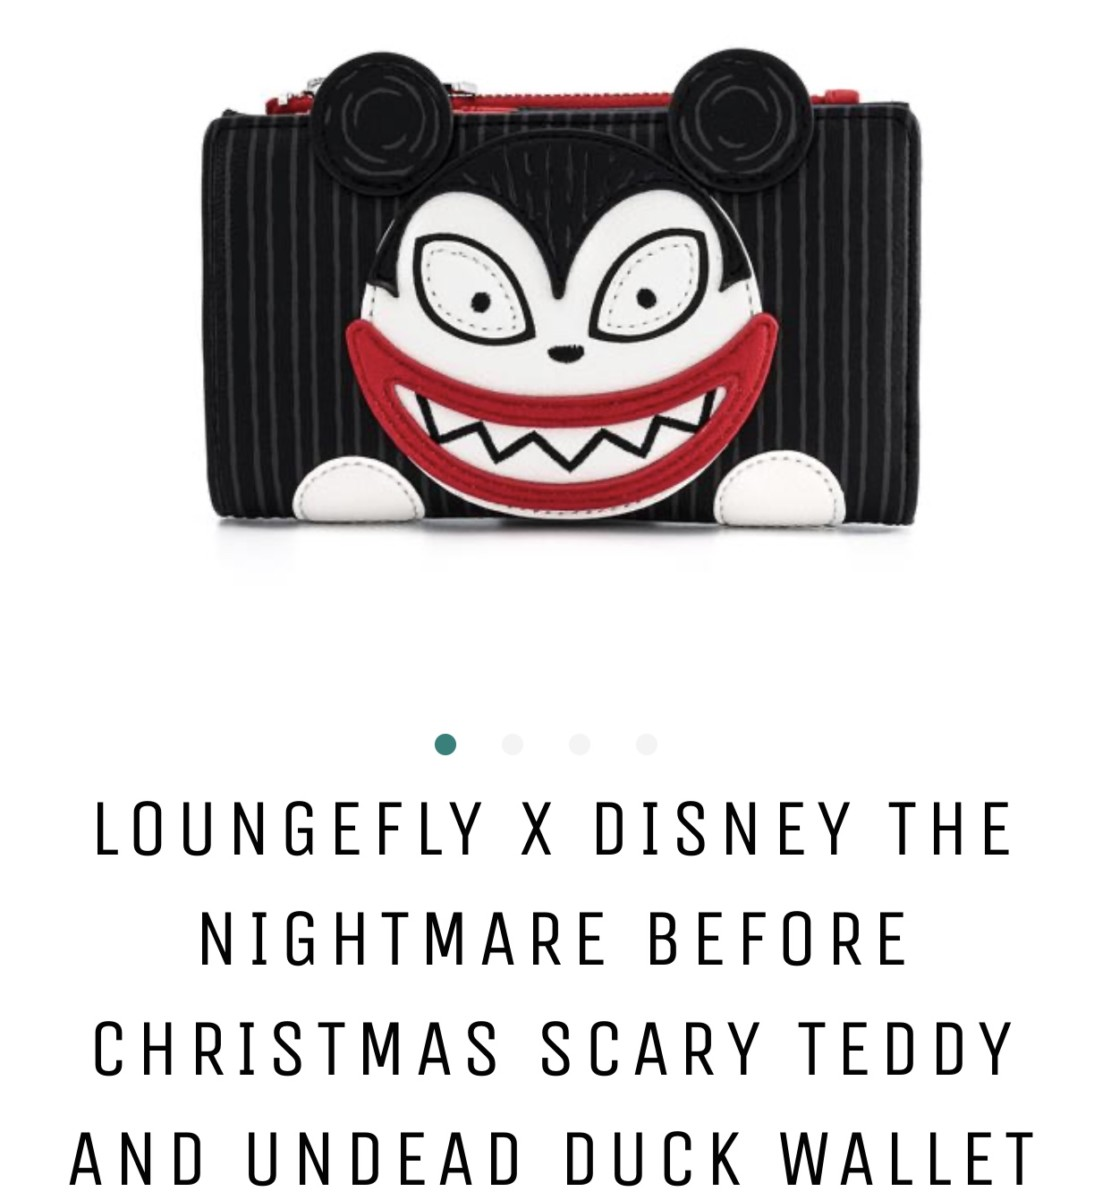 New Nightmare Before Christmas Bags from Loungefly 7